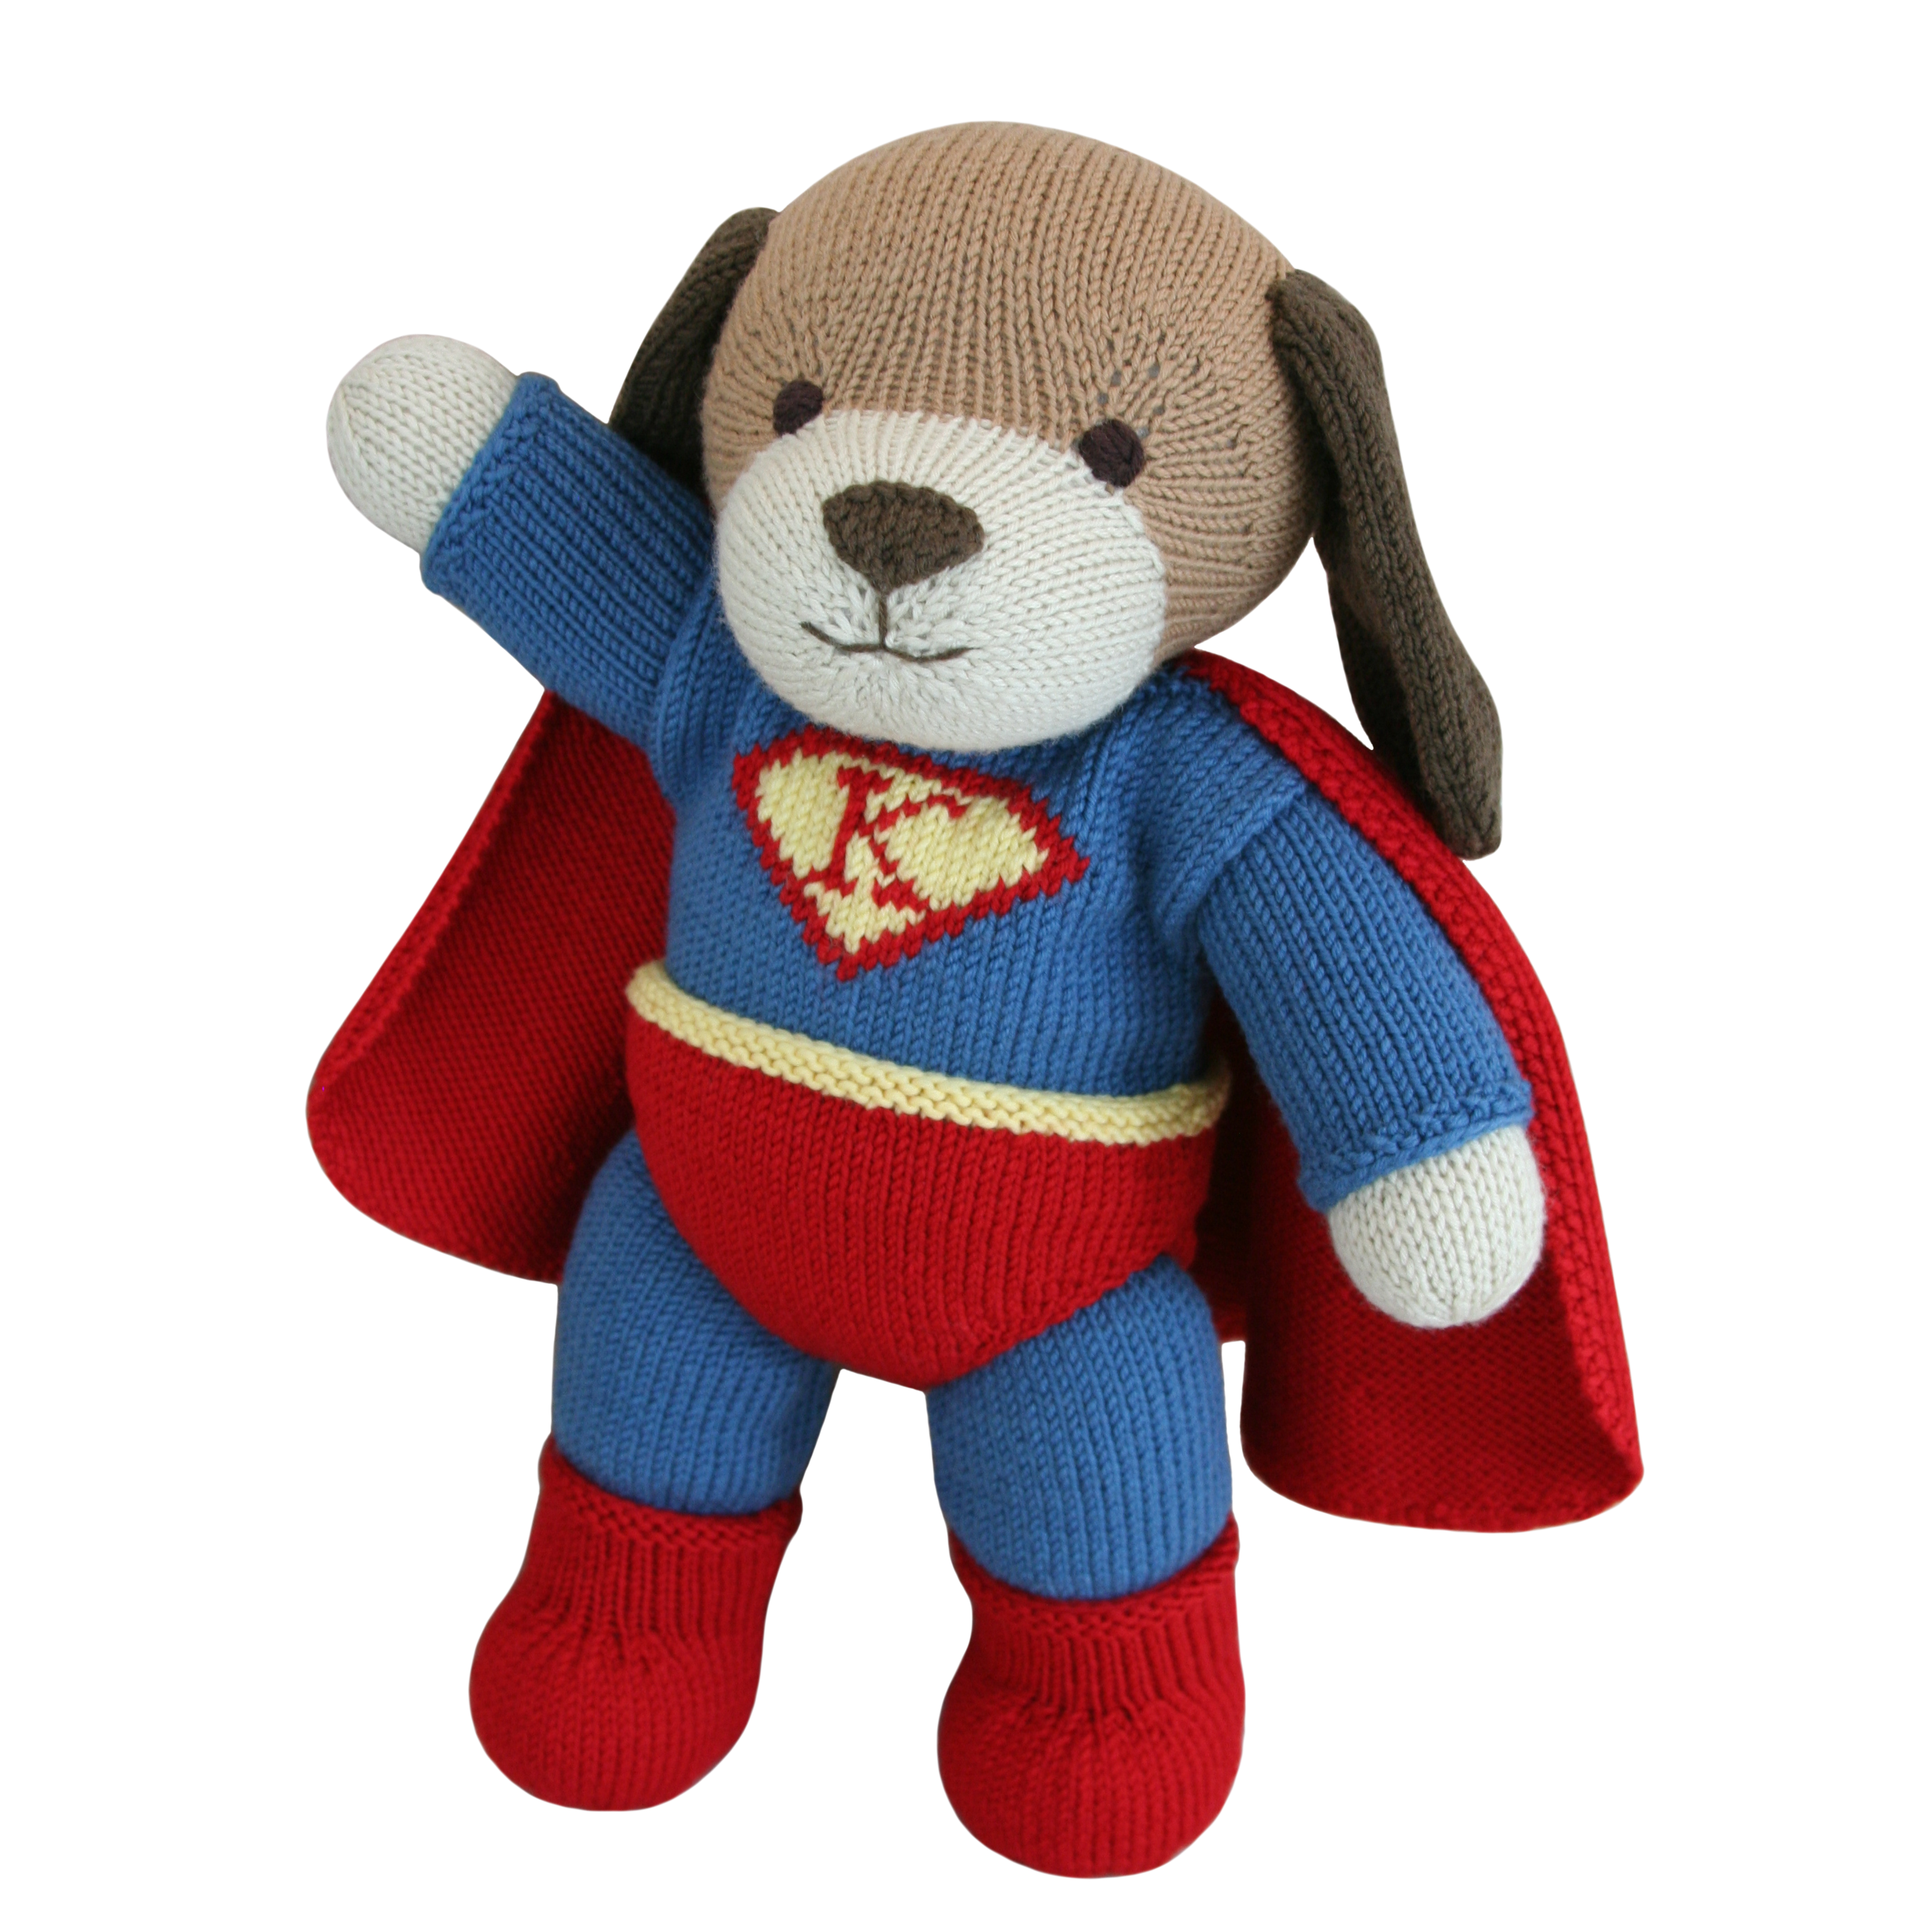 Superhero! knitting project by Knitables LoveKnitting